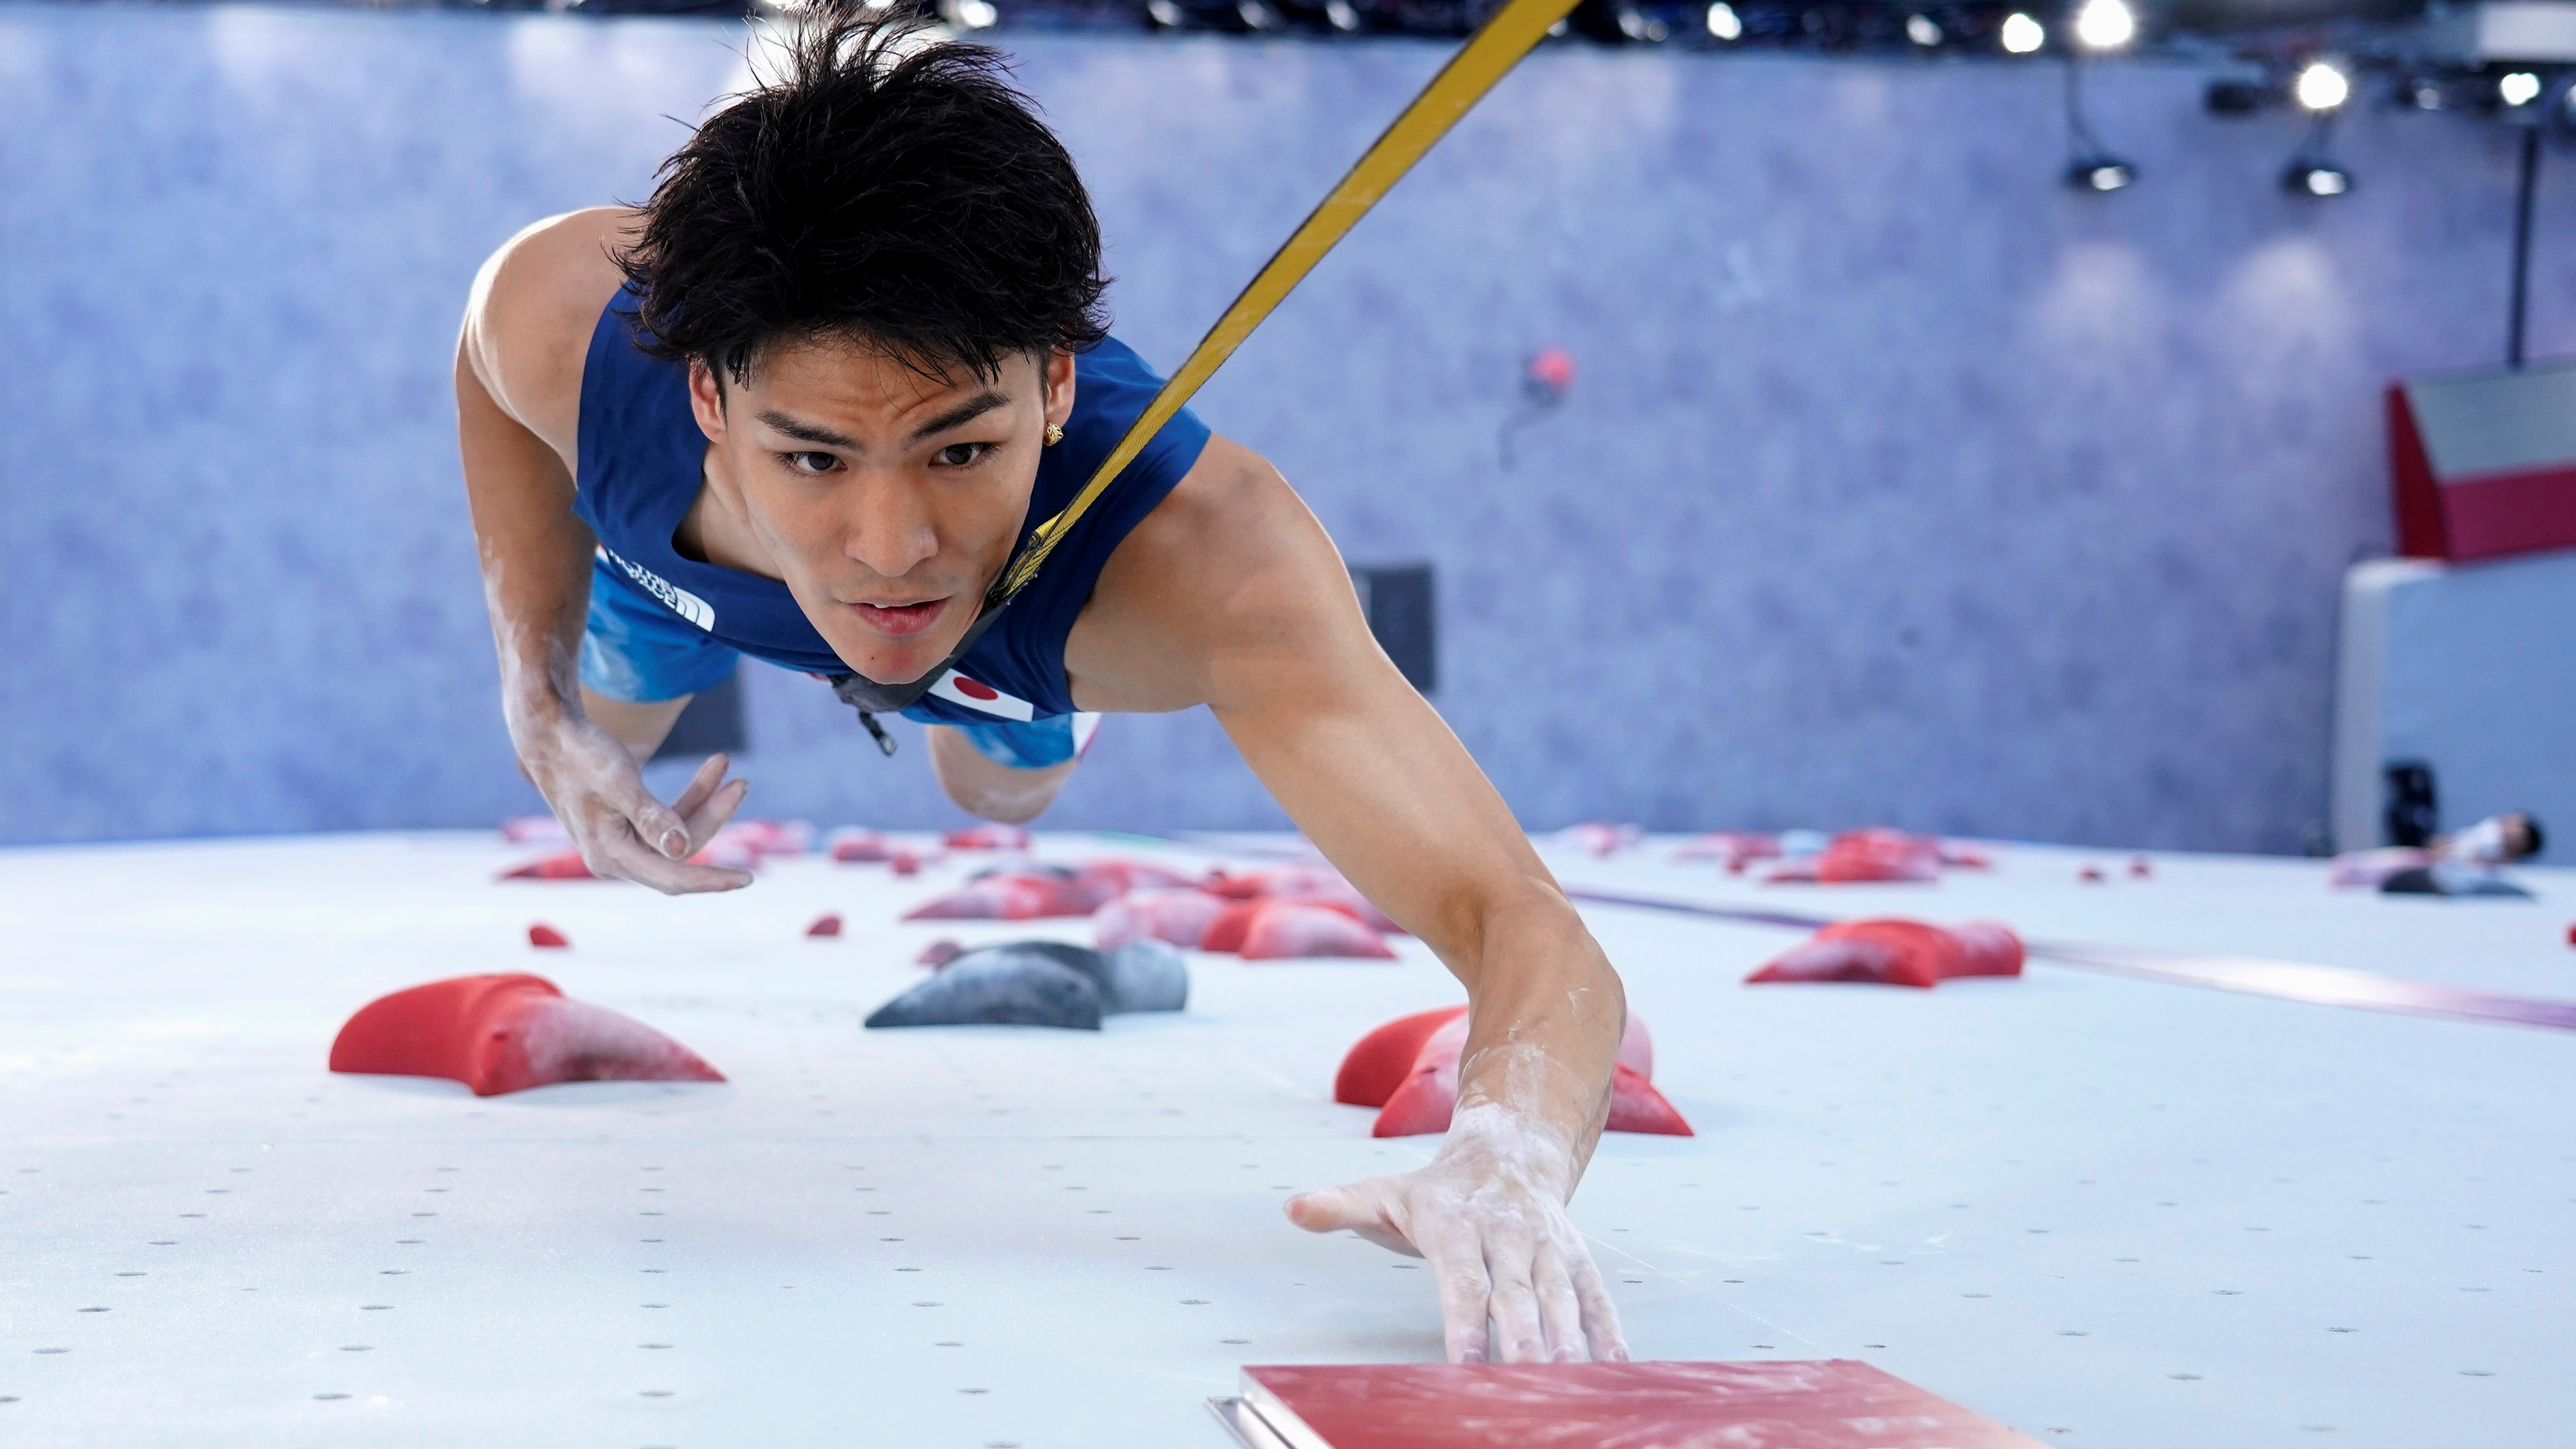 Tokyo 2020 Olympics - Sport Climbing - Men's Combined - Qualification - Aomi Urban Sports Park - Tokyo, Japan - August 3, 2021.  Tomoa Narasaki of Japan in action Pool via REUTERS/@Auo1